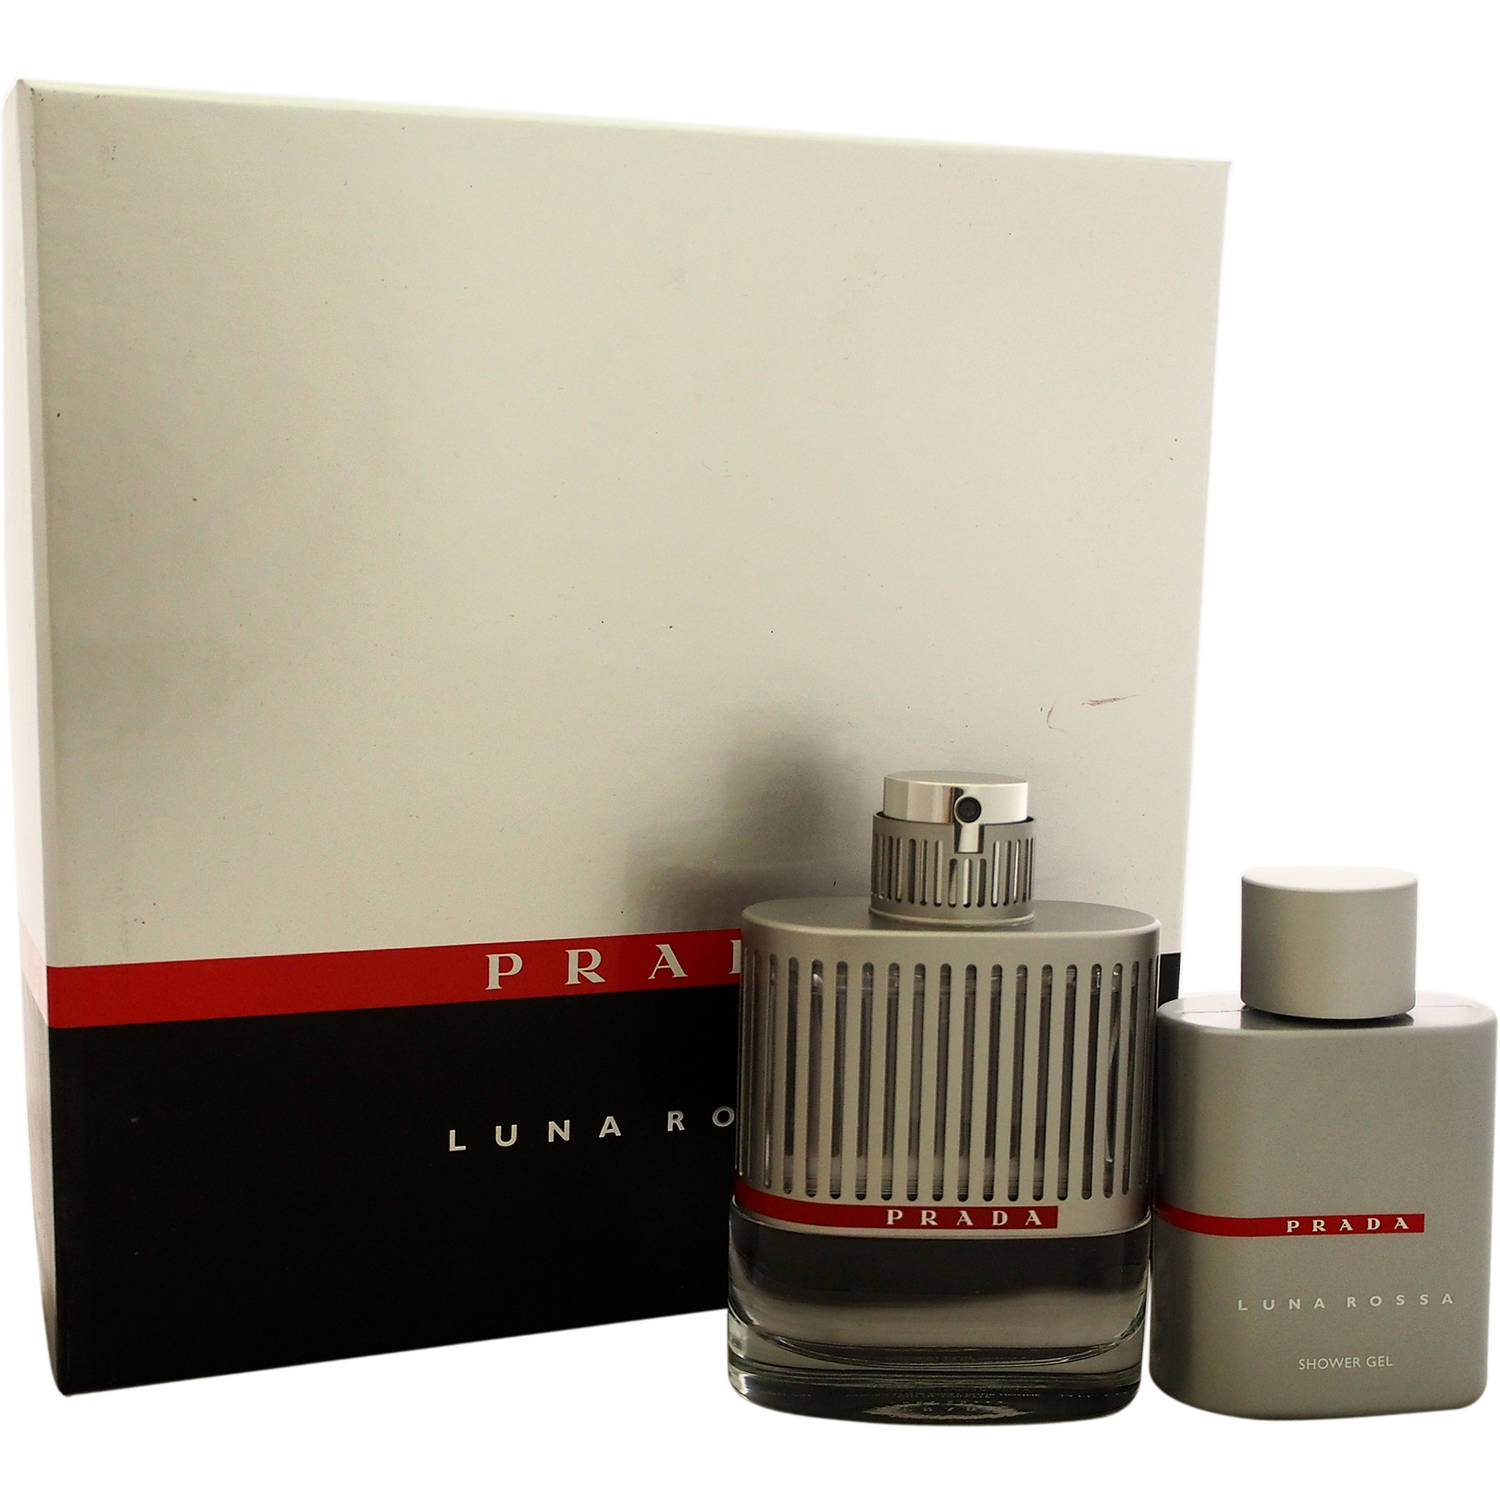 Prada Luna Rossa for Men Gift Set, 2 pc